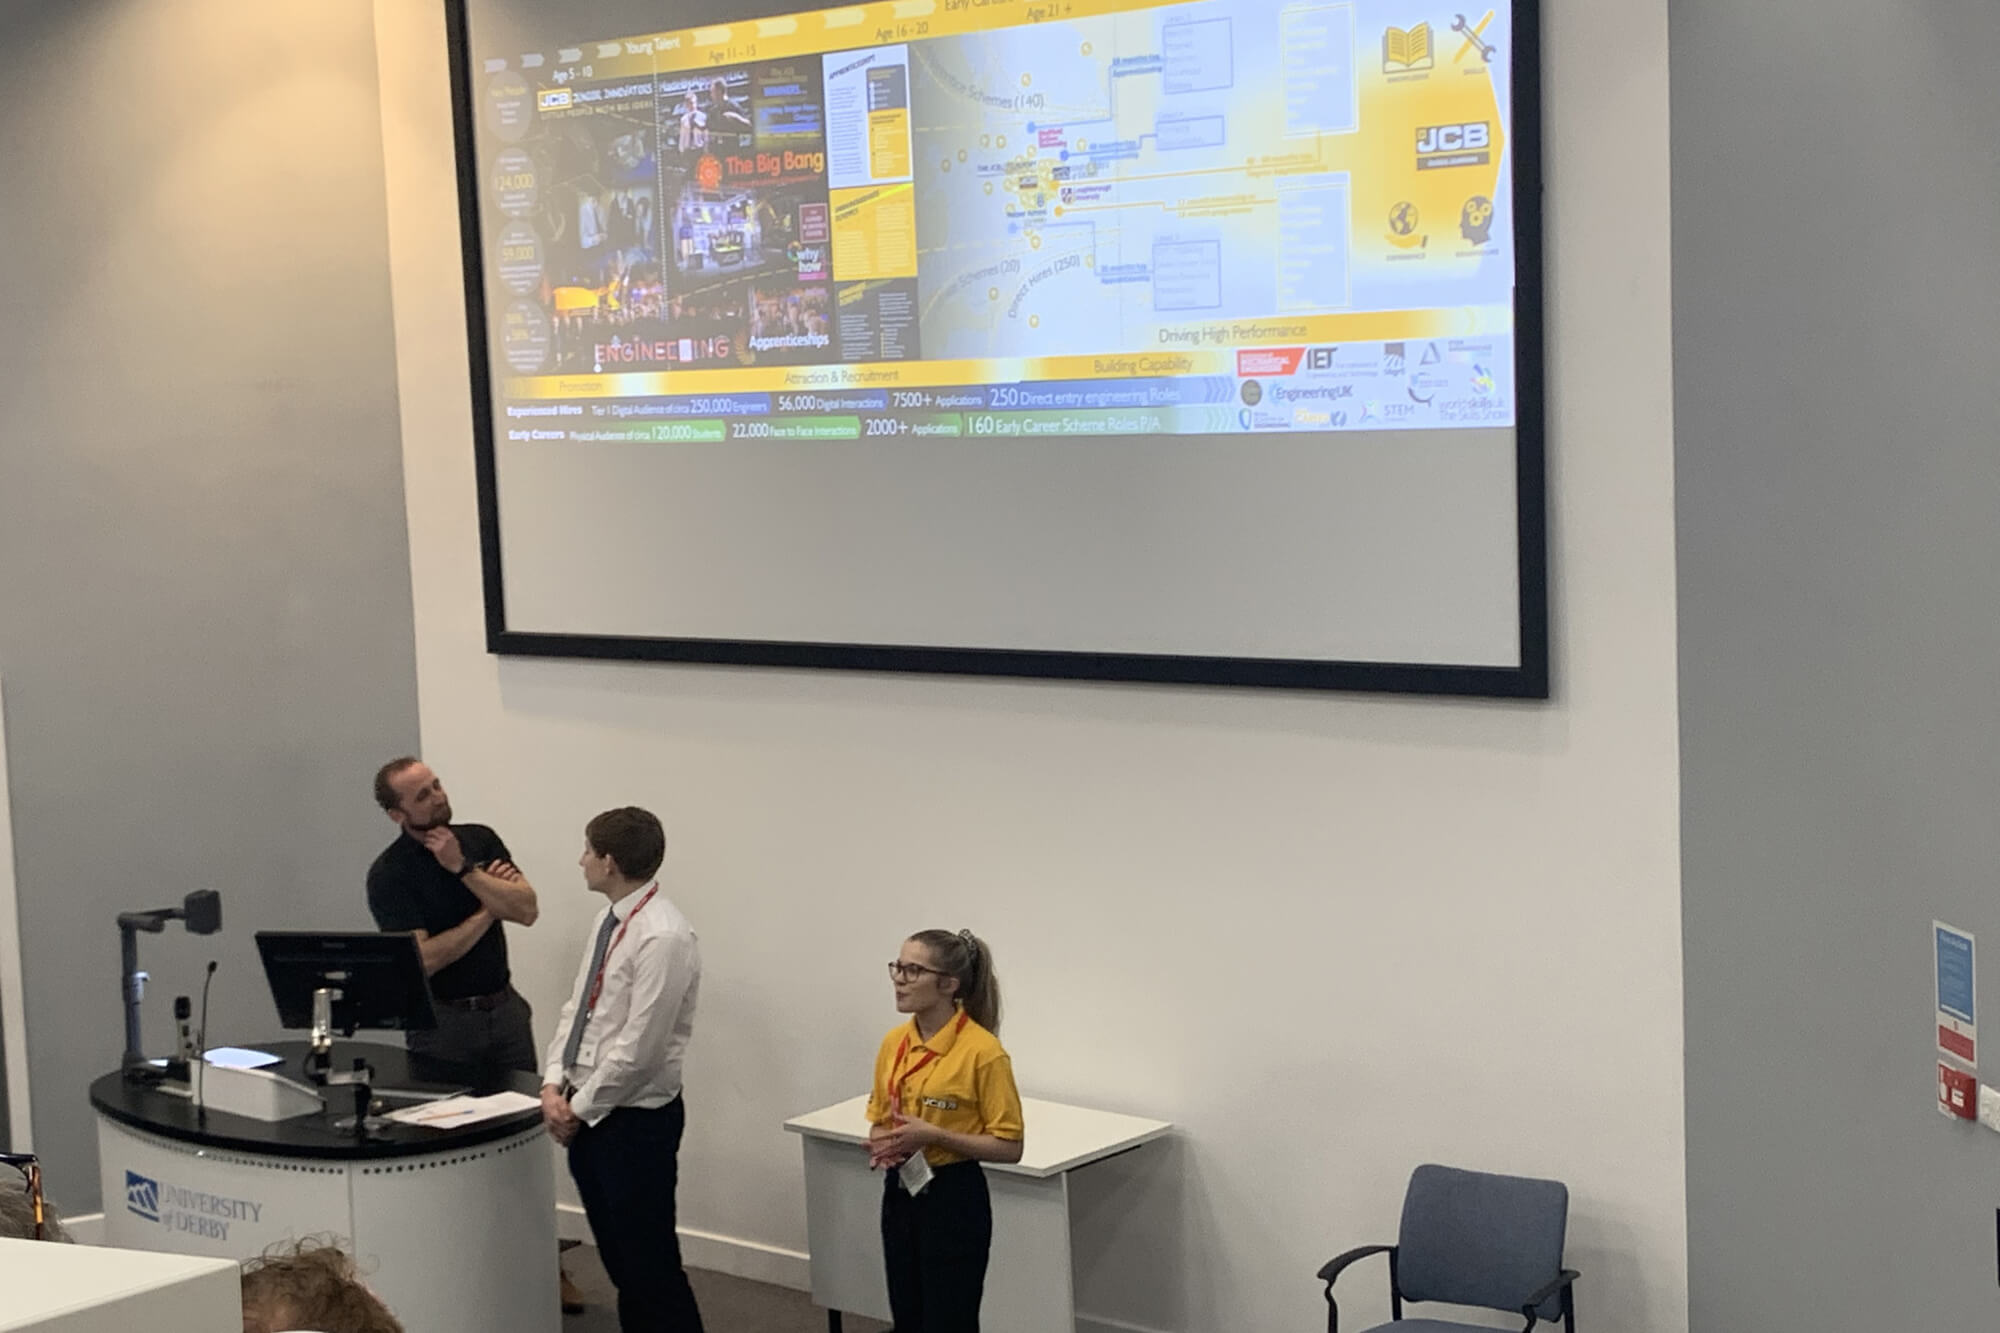 Molly is wearing a yellow JCB tshirt and is standing in front of a whit board presenting, next to a man in a white shirt and a man in a black shirt.